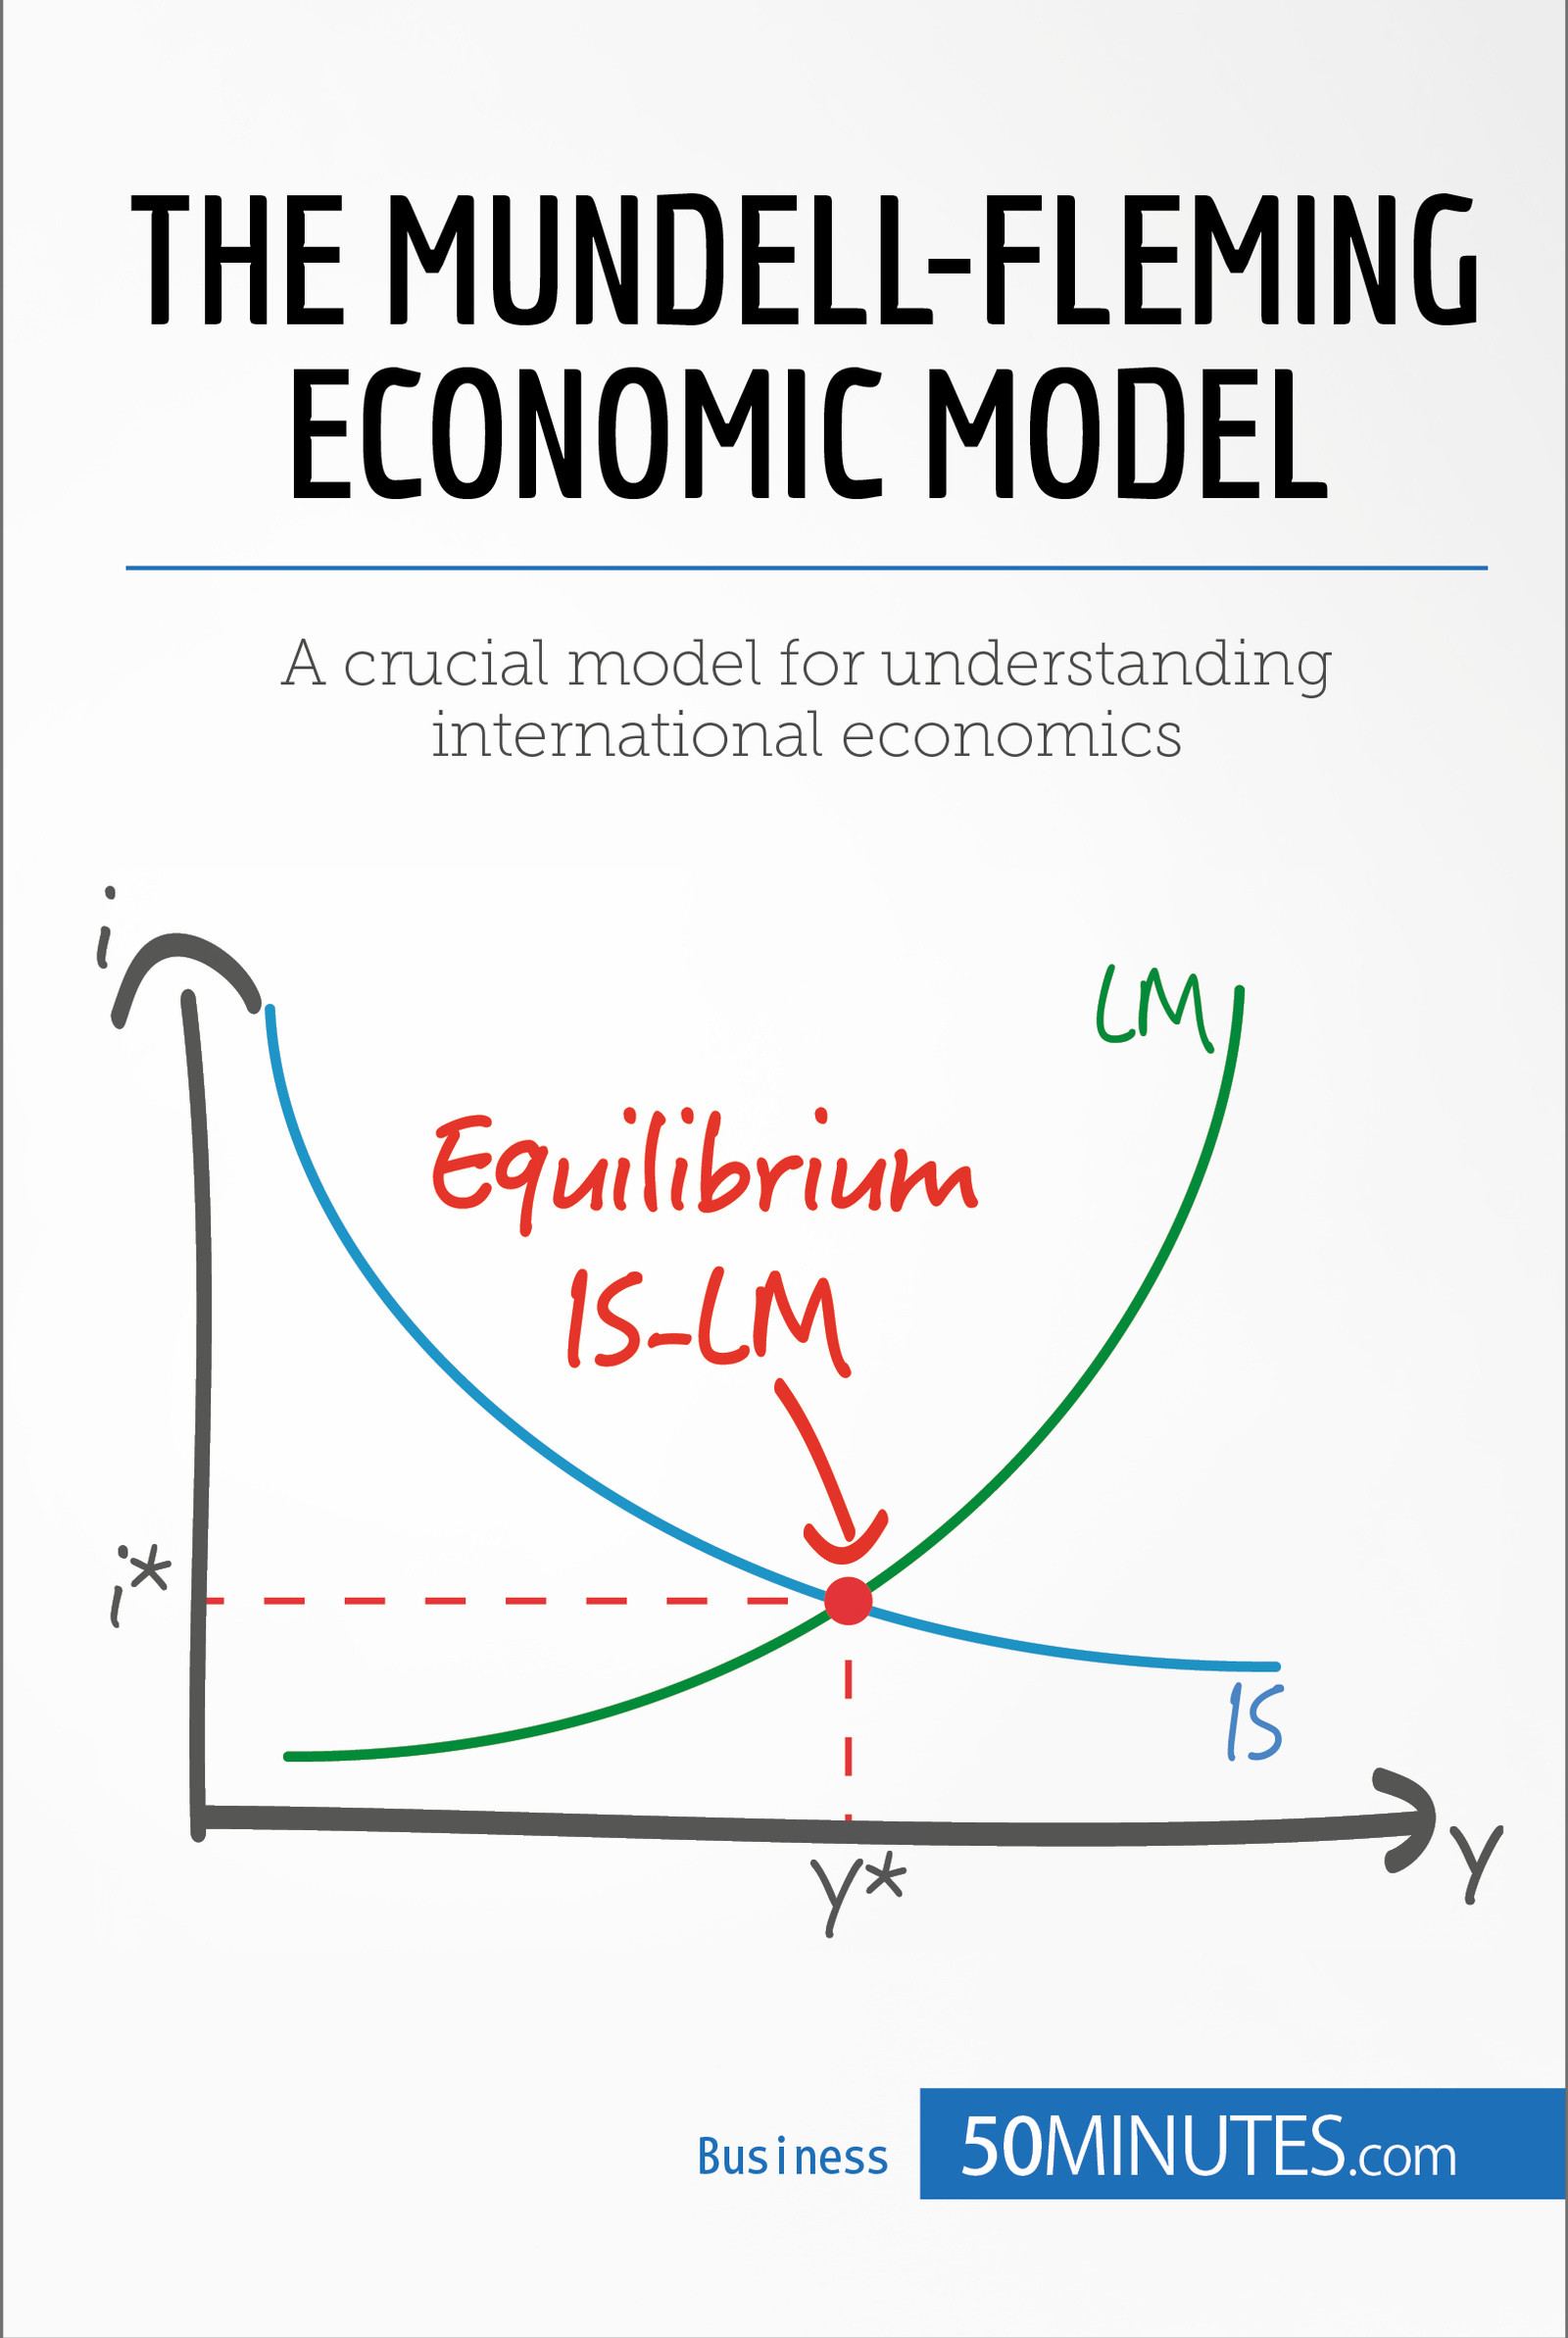 mundell model This model must be one of the most influential advances in macroeconomics in recent times economic times it still serves as the default model for most policy-makers.